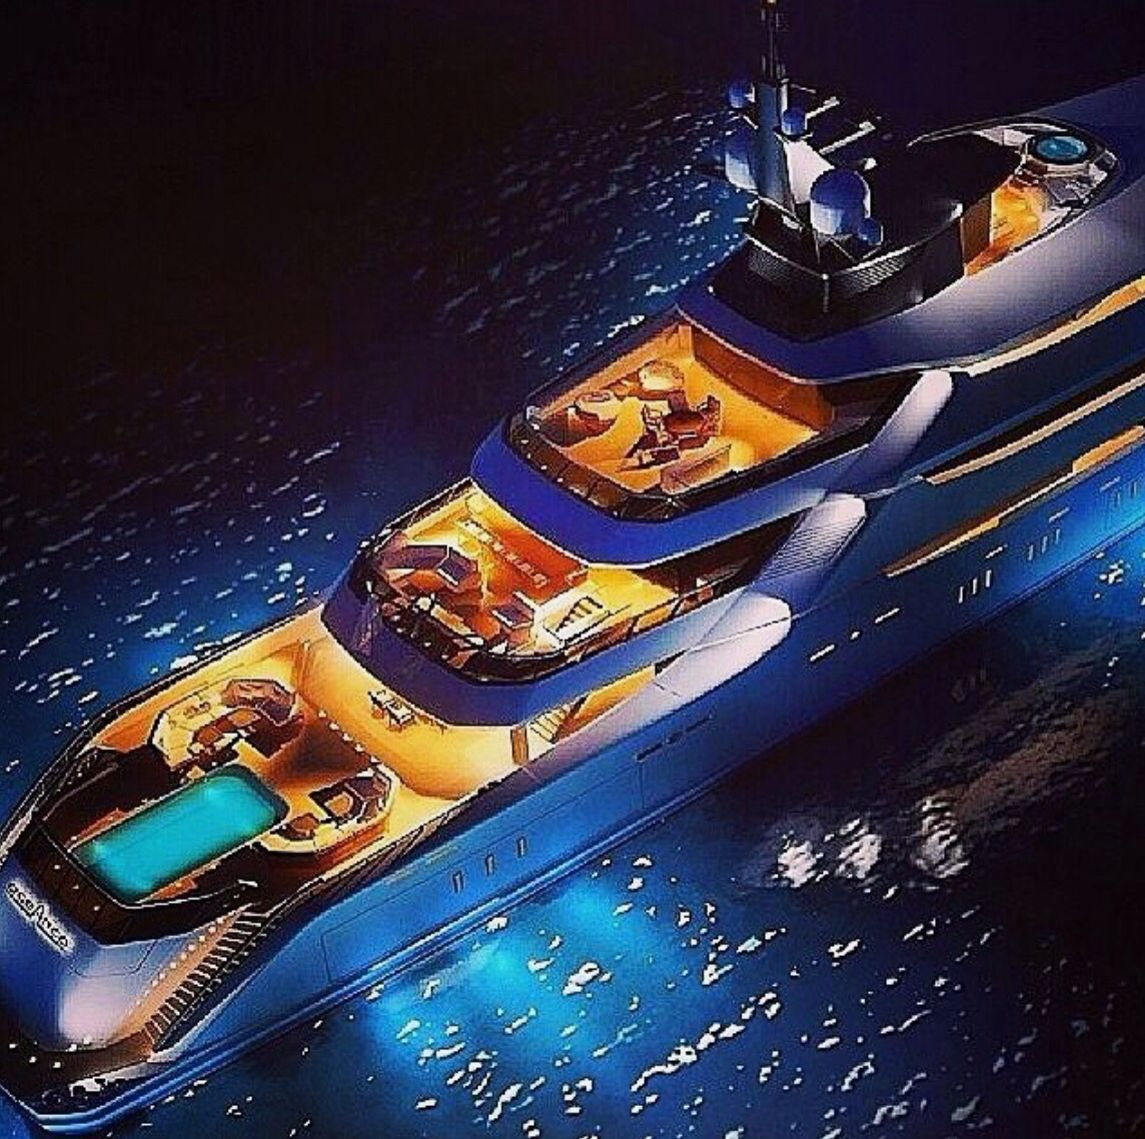 Luxury Safes, Luxury Yachts, Yacht Interior Design, Luxury